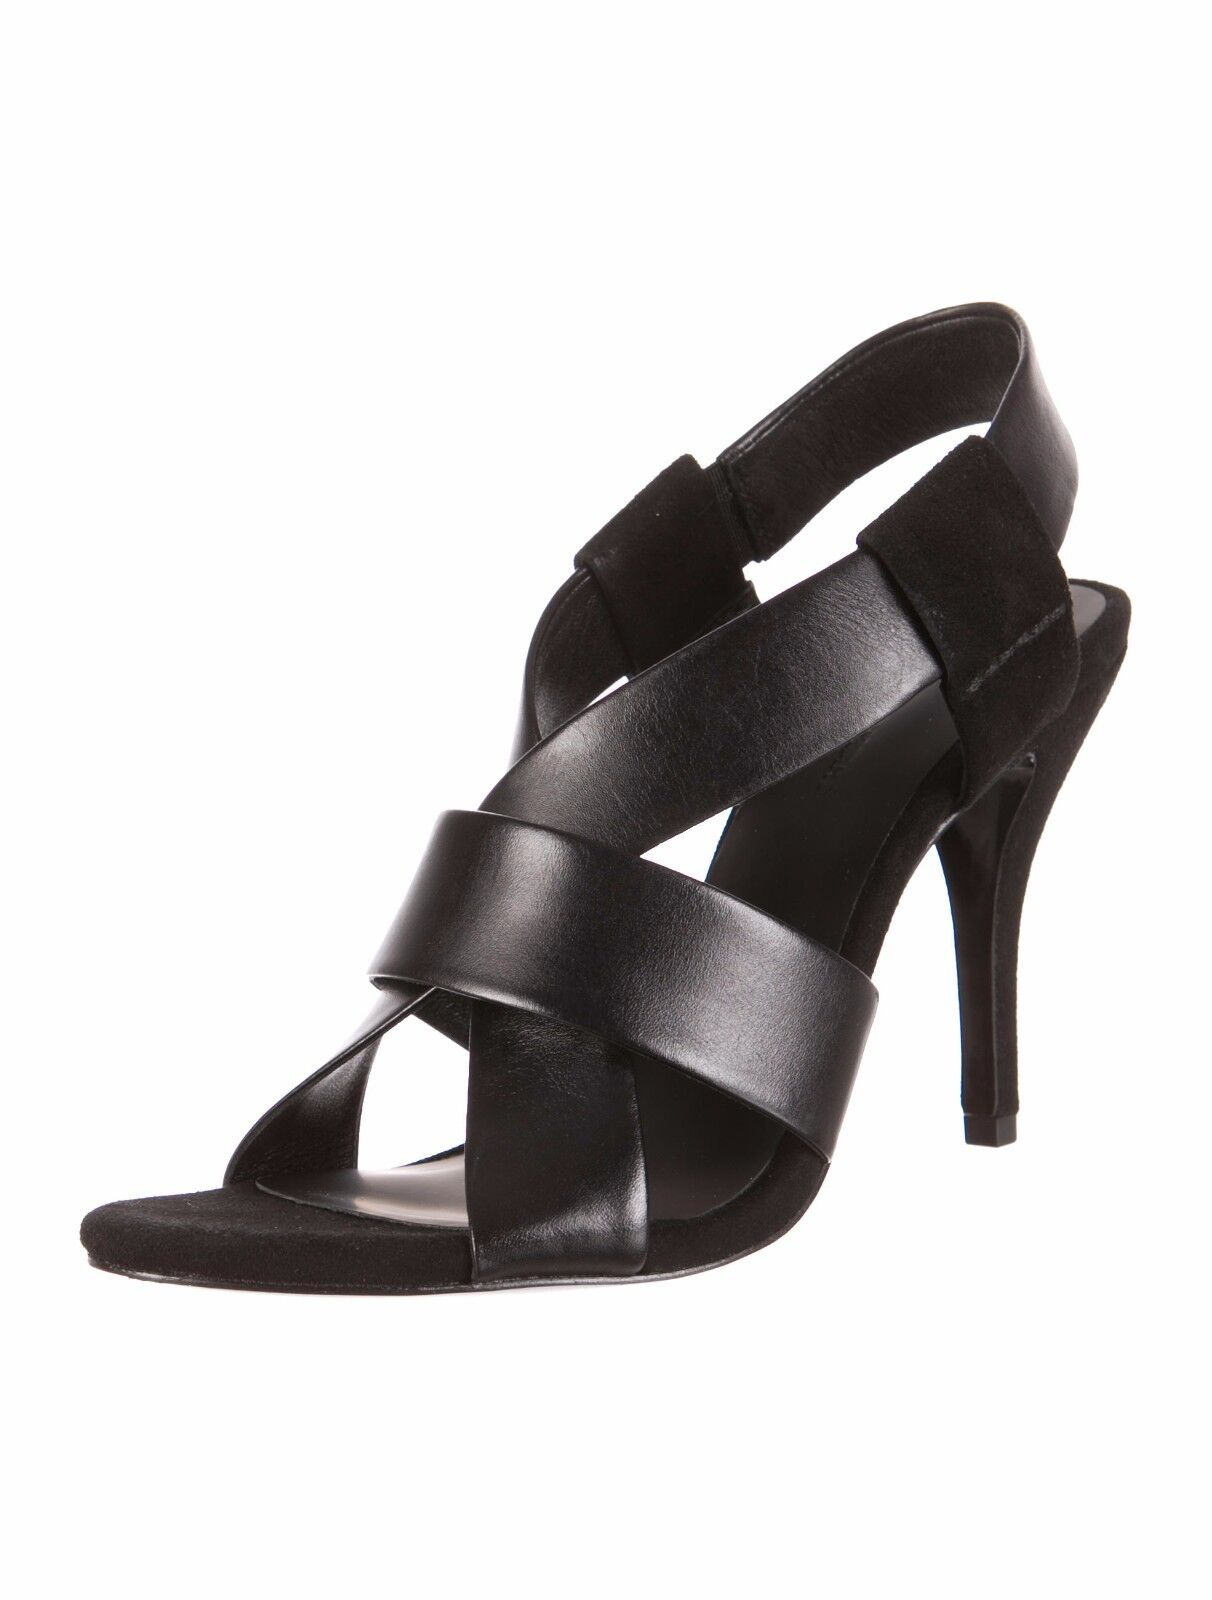 STUNNING SOLD OUT NWB ALEXANDER WANG BLACK  LILIAN  LEATHER & SUEDE HEELS